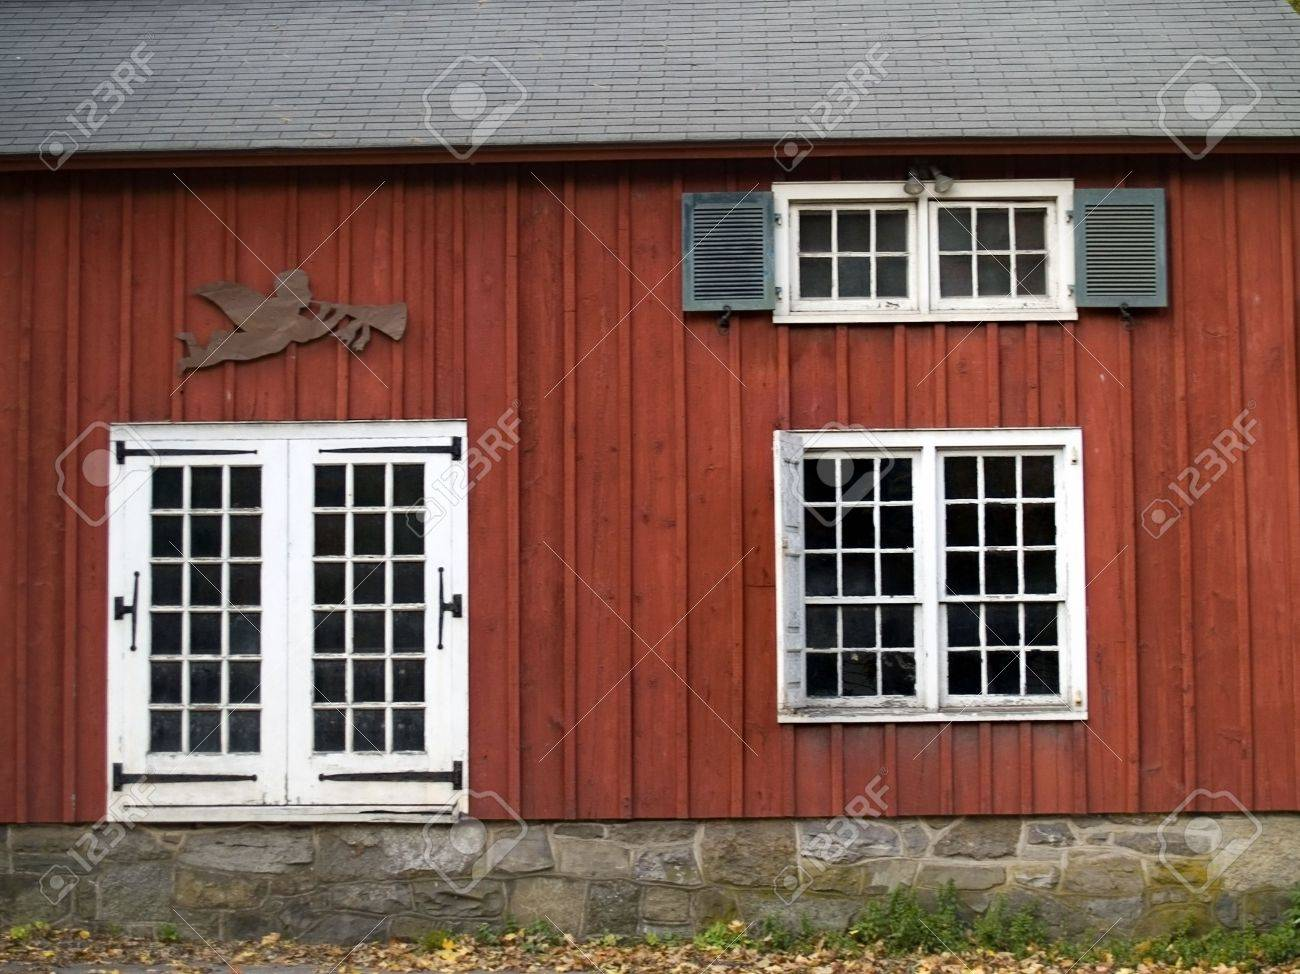 A colorful side of a rural country building depicting antique windows and  doors along with nice - A Colorful Side Of A Rural Country Building Depicting Antique